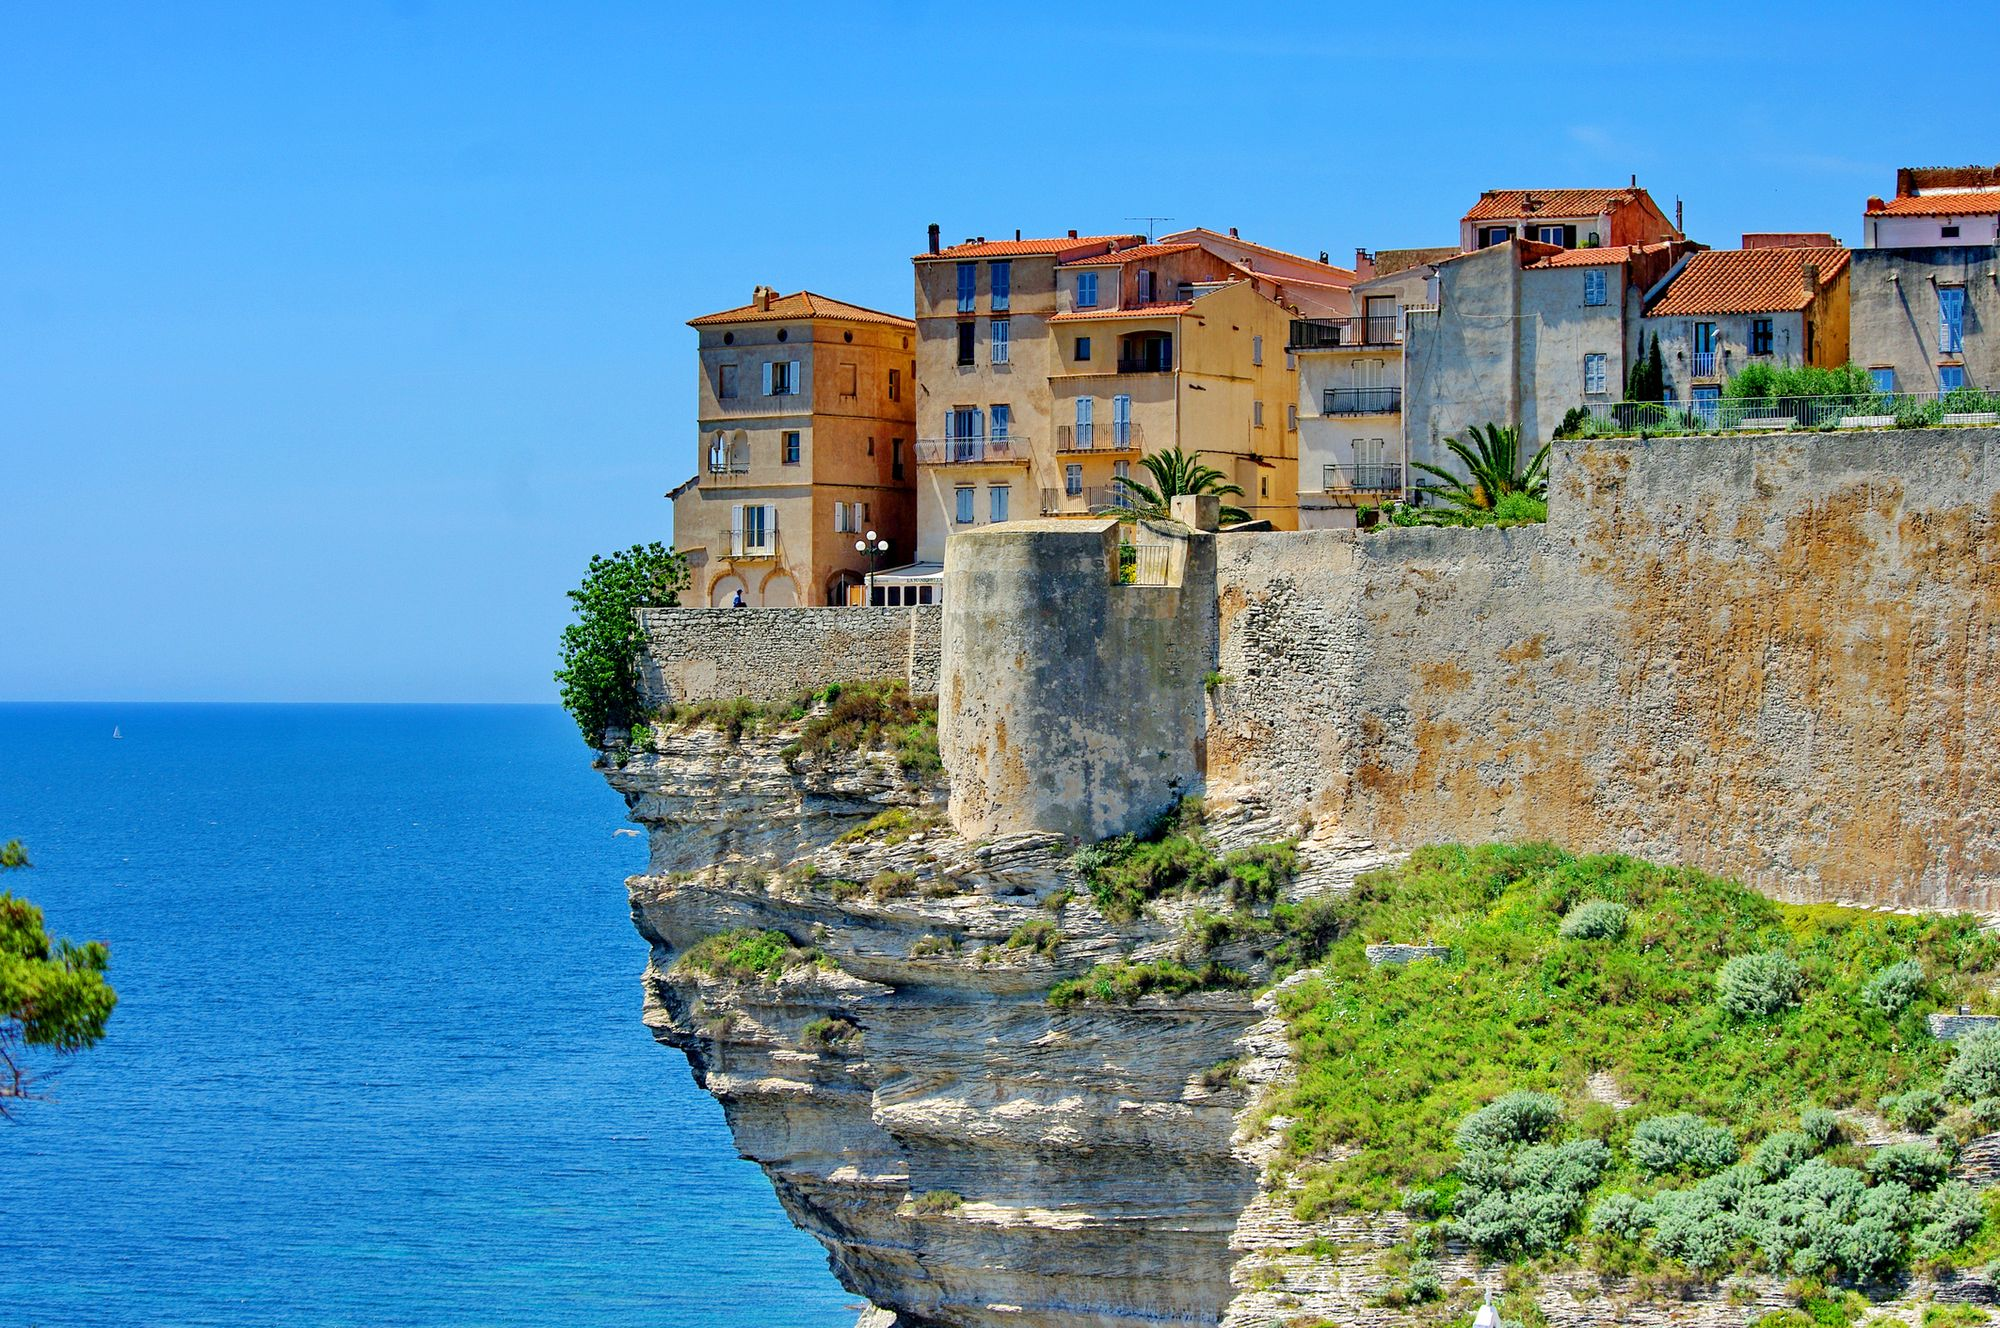 Houses perched over a cliff in Corsica - one of the best holiday destinations in the Mediterranean